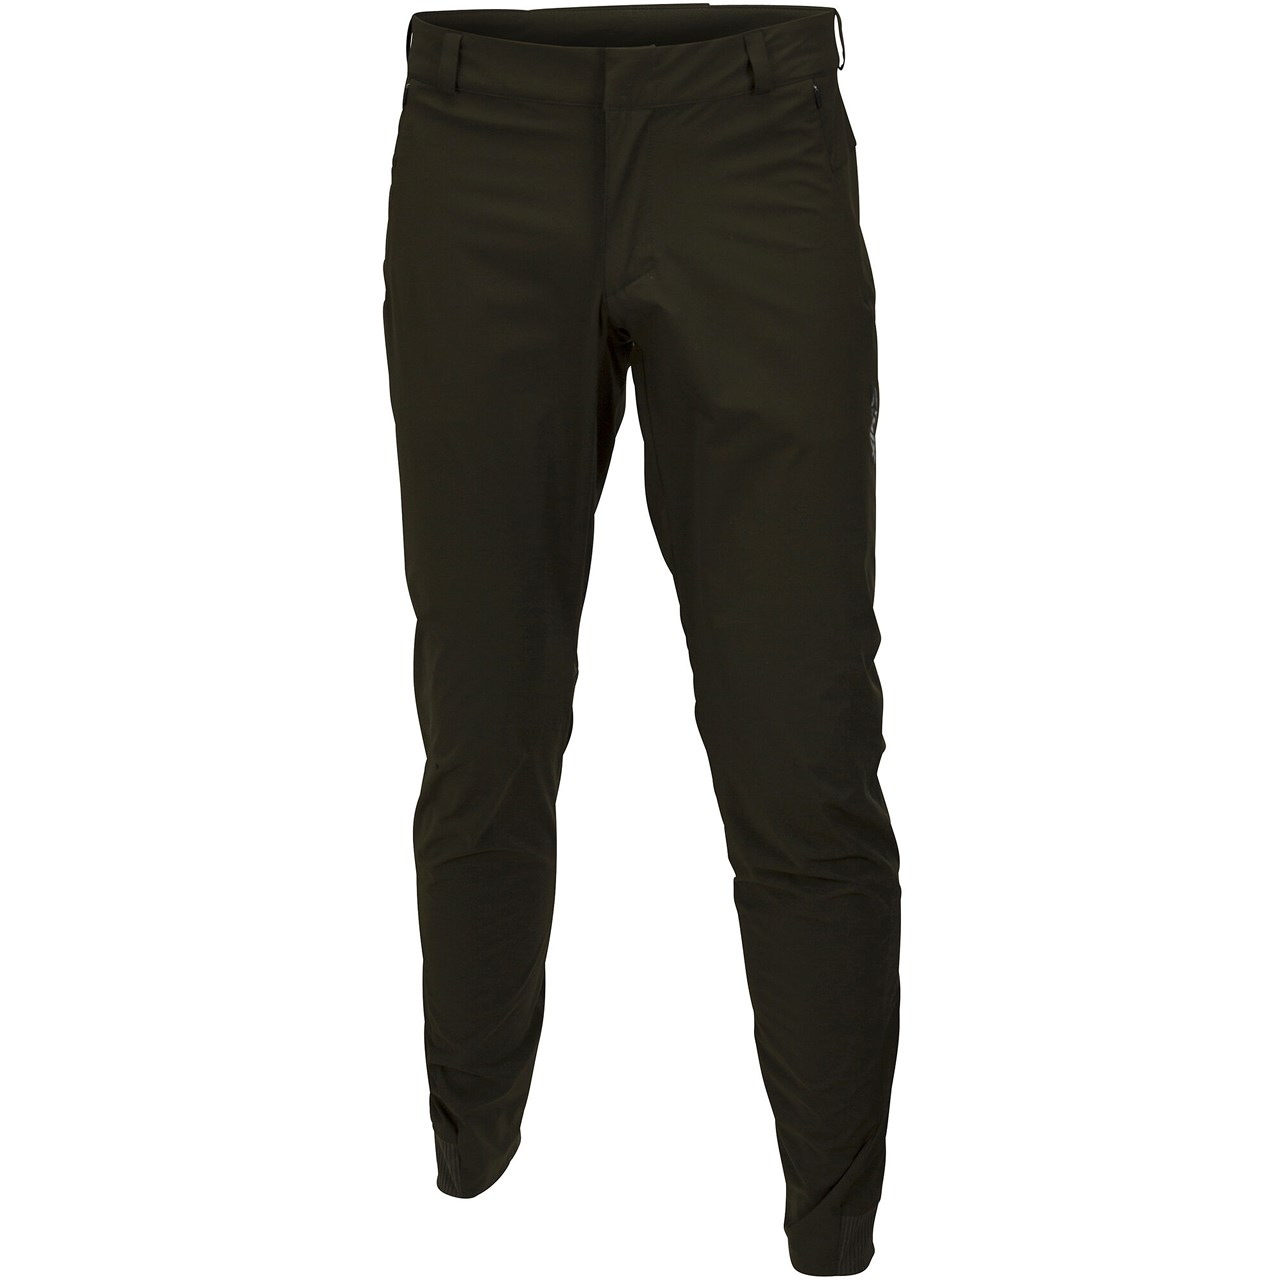 Swix Motion adventure pant M olive